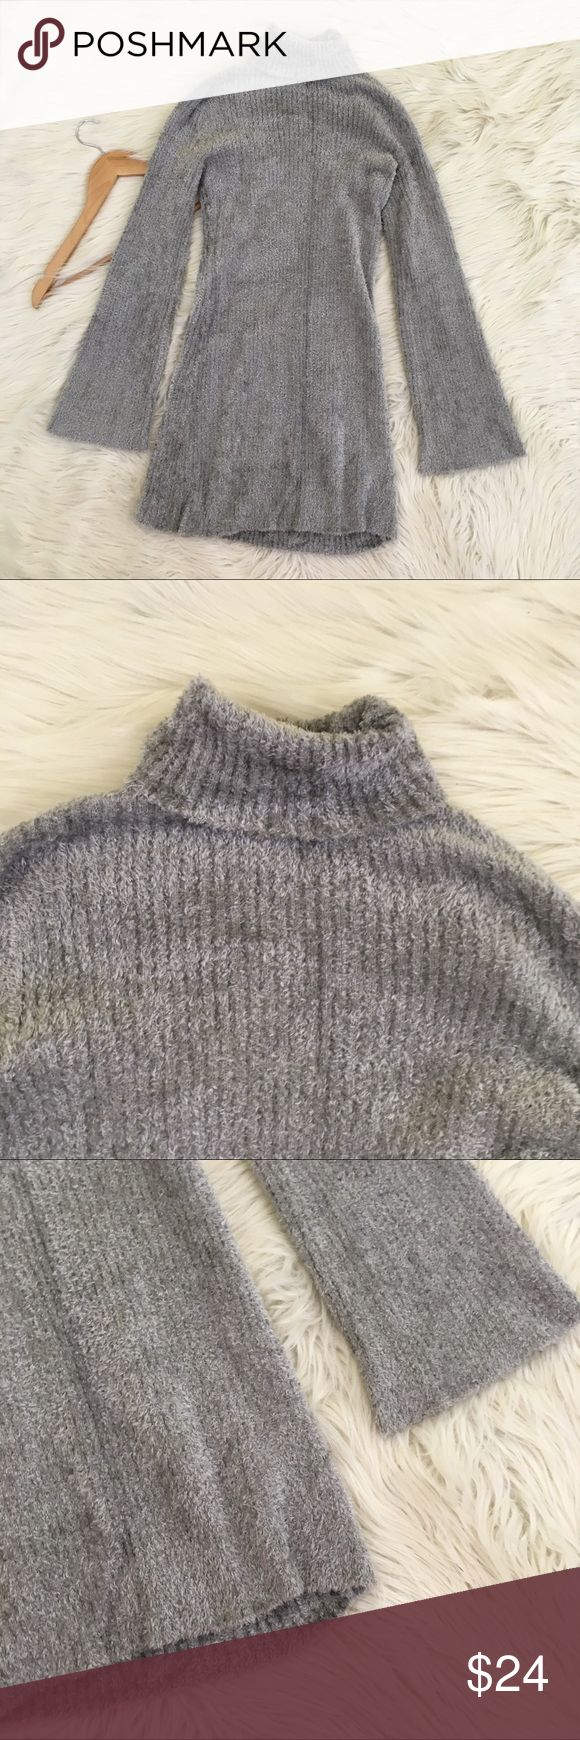 INC international Concepts Fuzzy Sweater Dress Inc international Concepts women's medium sweater dress • Fuzzy Faux Fur material • Light grey • Turtleneck • micro mini, best worn with leggings • Fitted and stretchy • excellent condition no flaws  Length: Armpit to armpit:  📌NO lowball offers 📌NO modeling 📌NO trades  Come check out the rest of my closet! I have various brands and ALL different sizes ❤️  Tags for discovery: INC International Concepts Dresses Long Sleeve